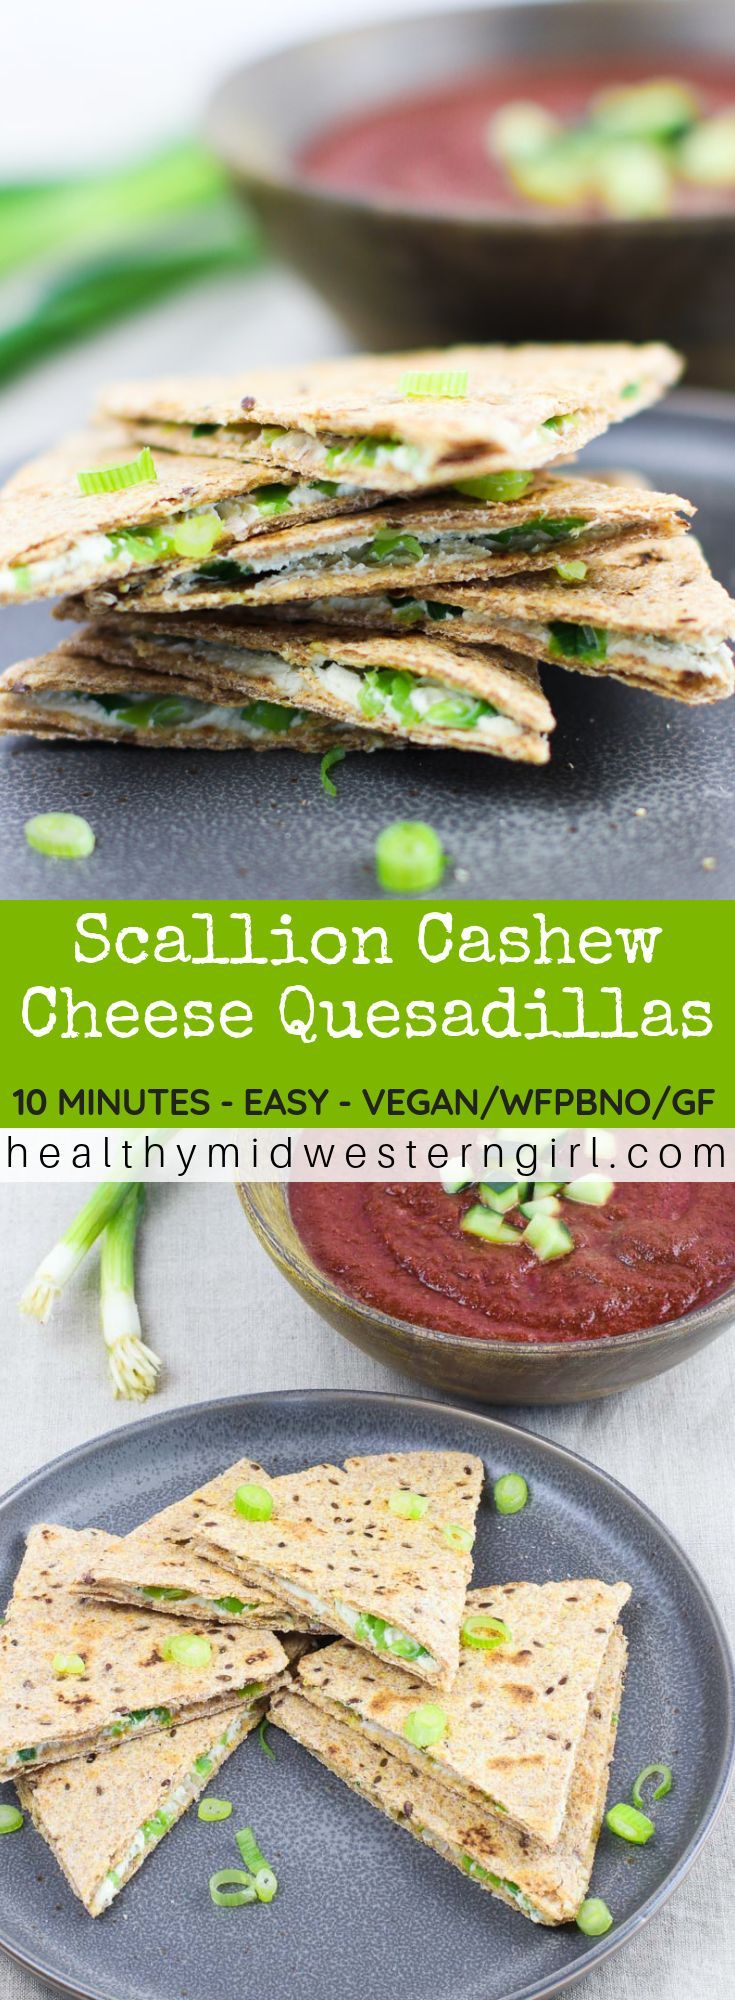 3 Ingredient Healthy Vegan Quesadillas Made With Cashew Cheese And Scallions A Bit Like Vietnames Scal Vegan Appetizers Vegan Recipes Easy Healthy Appetizers